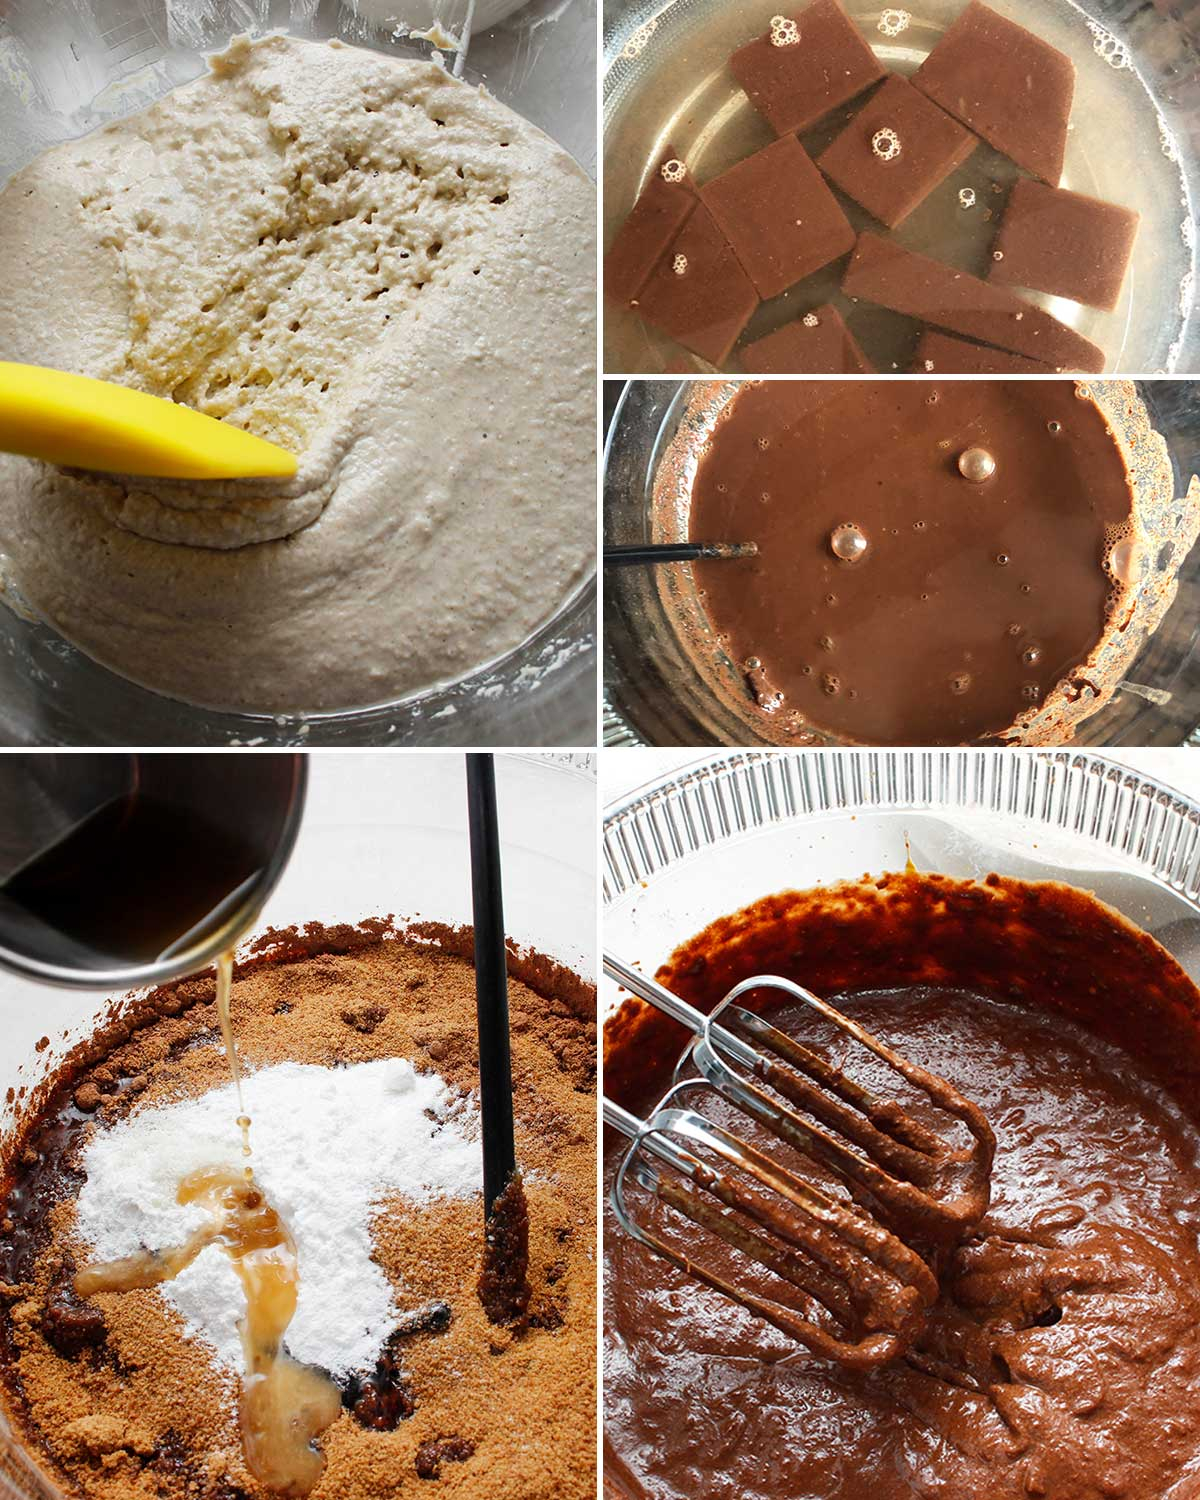 Ingredients for GF chocolate cupcakes